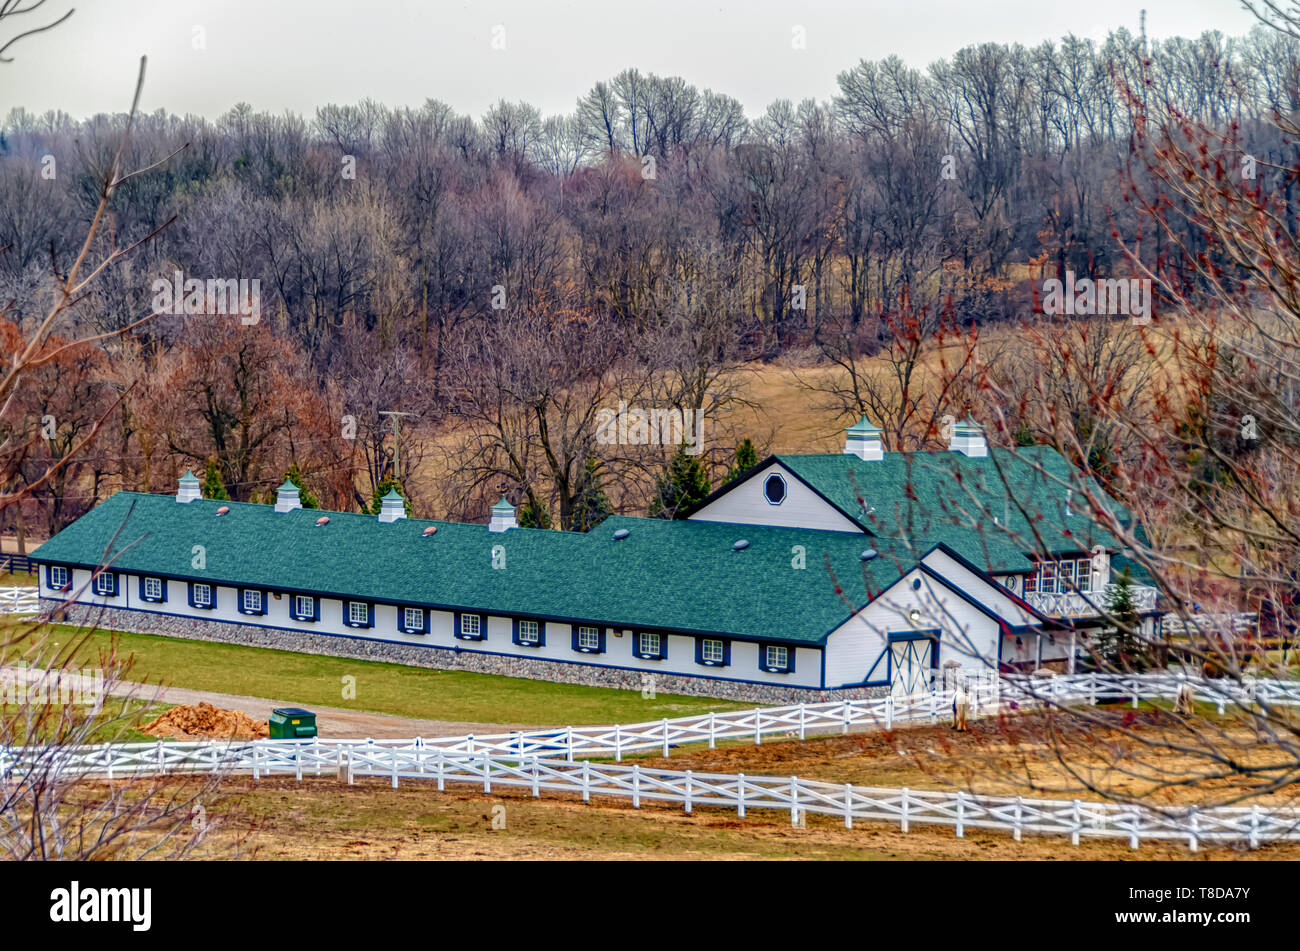 A horse ranch/horse farm/stable with a white wooden fence in Michigan, USA. - Stock Image